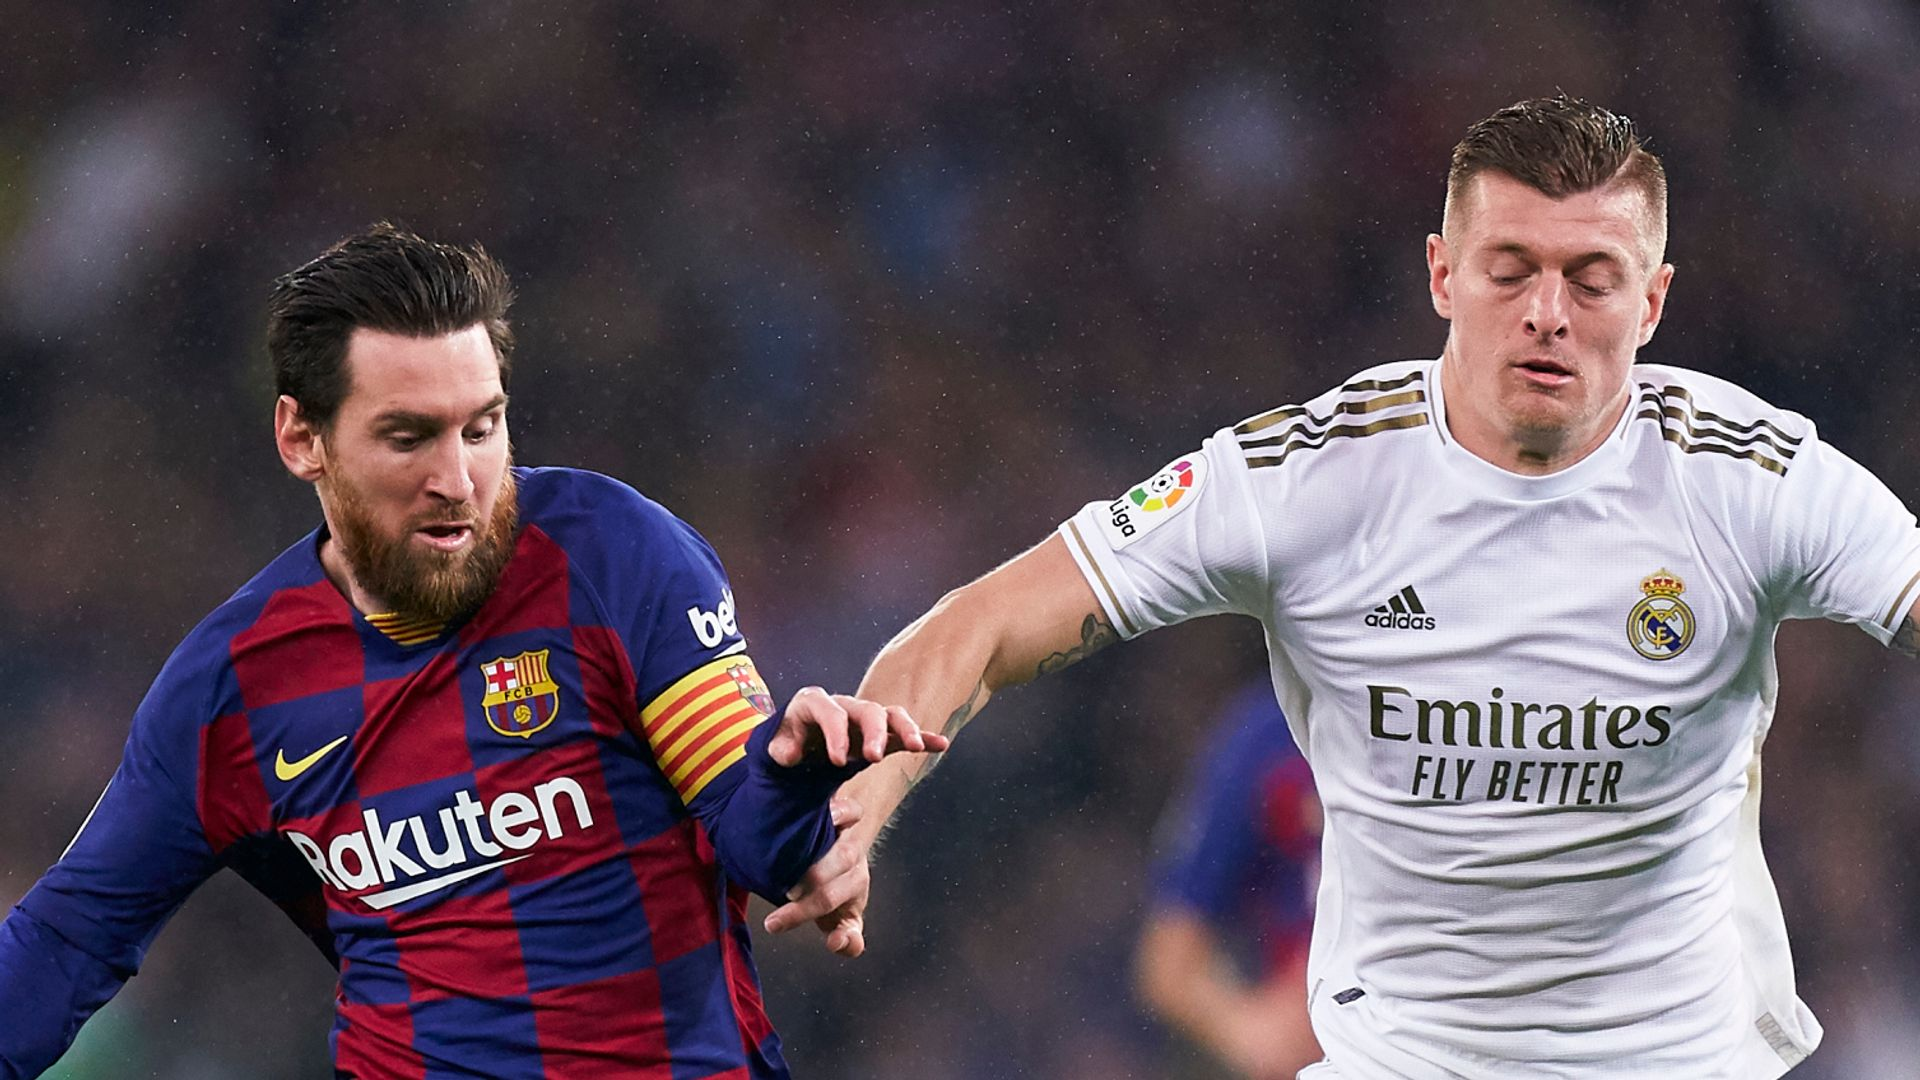 La Liga cleared to restart from June 8